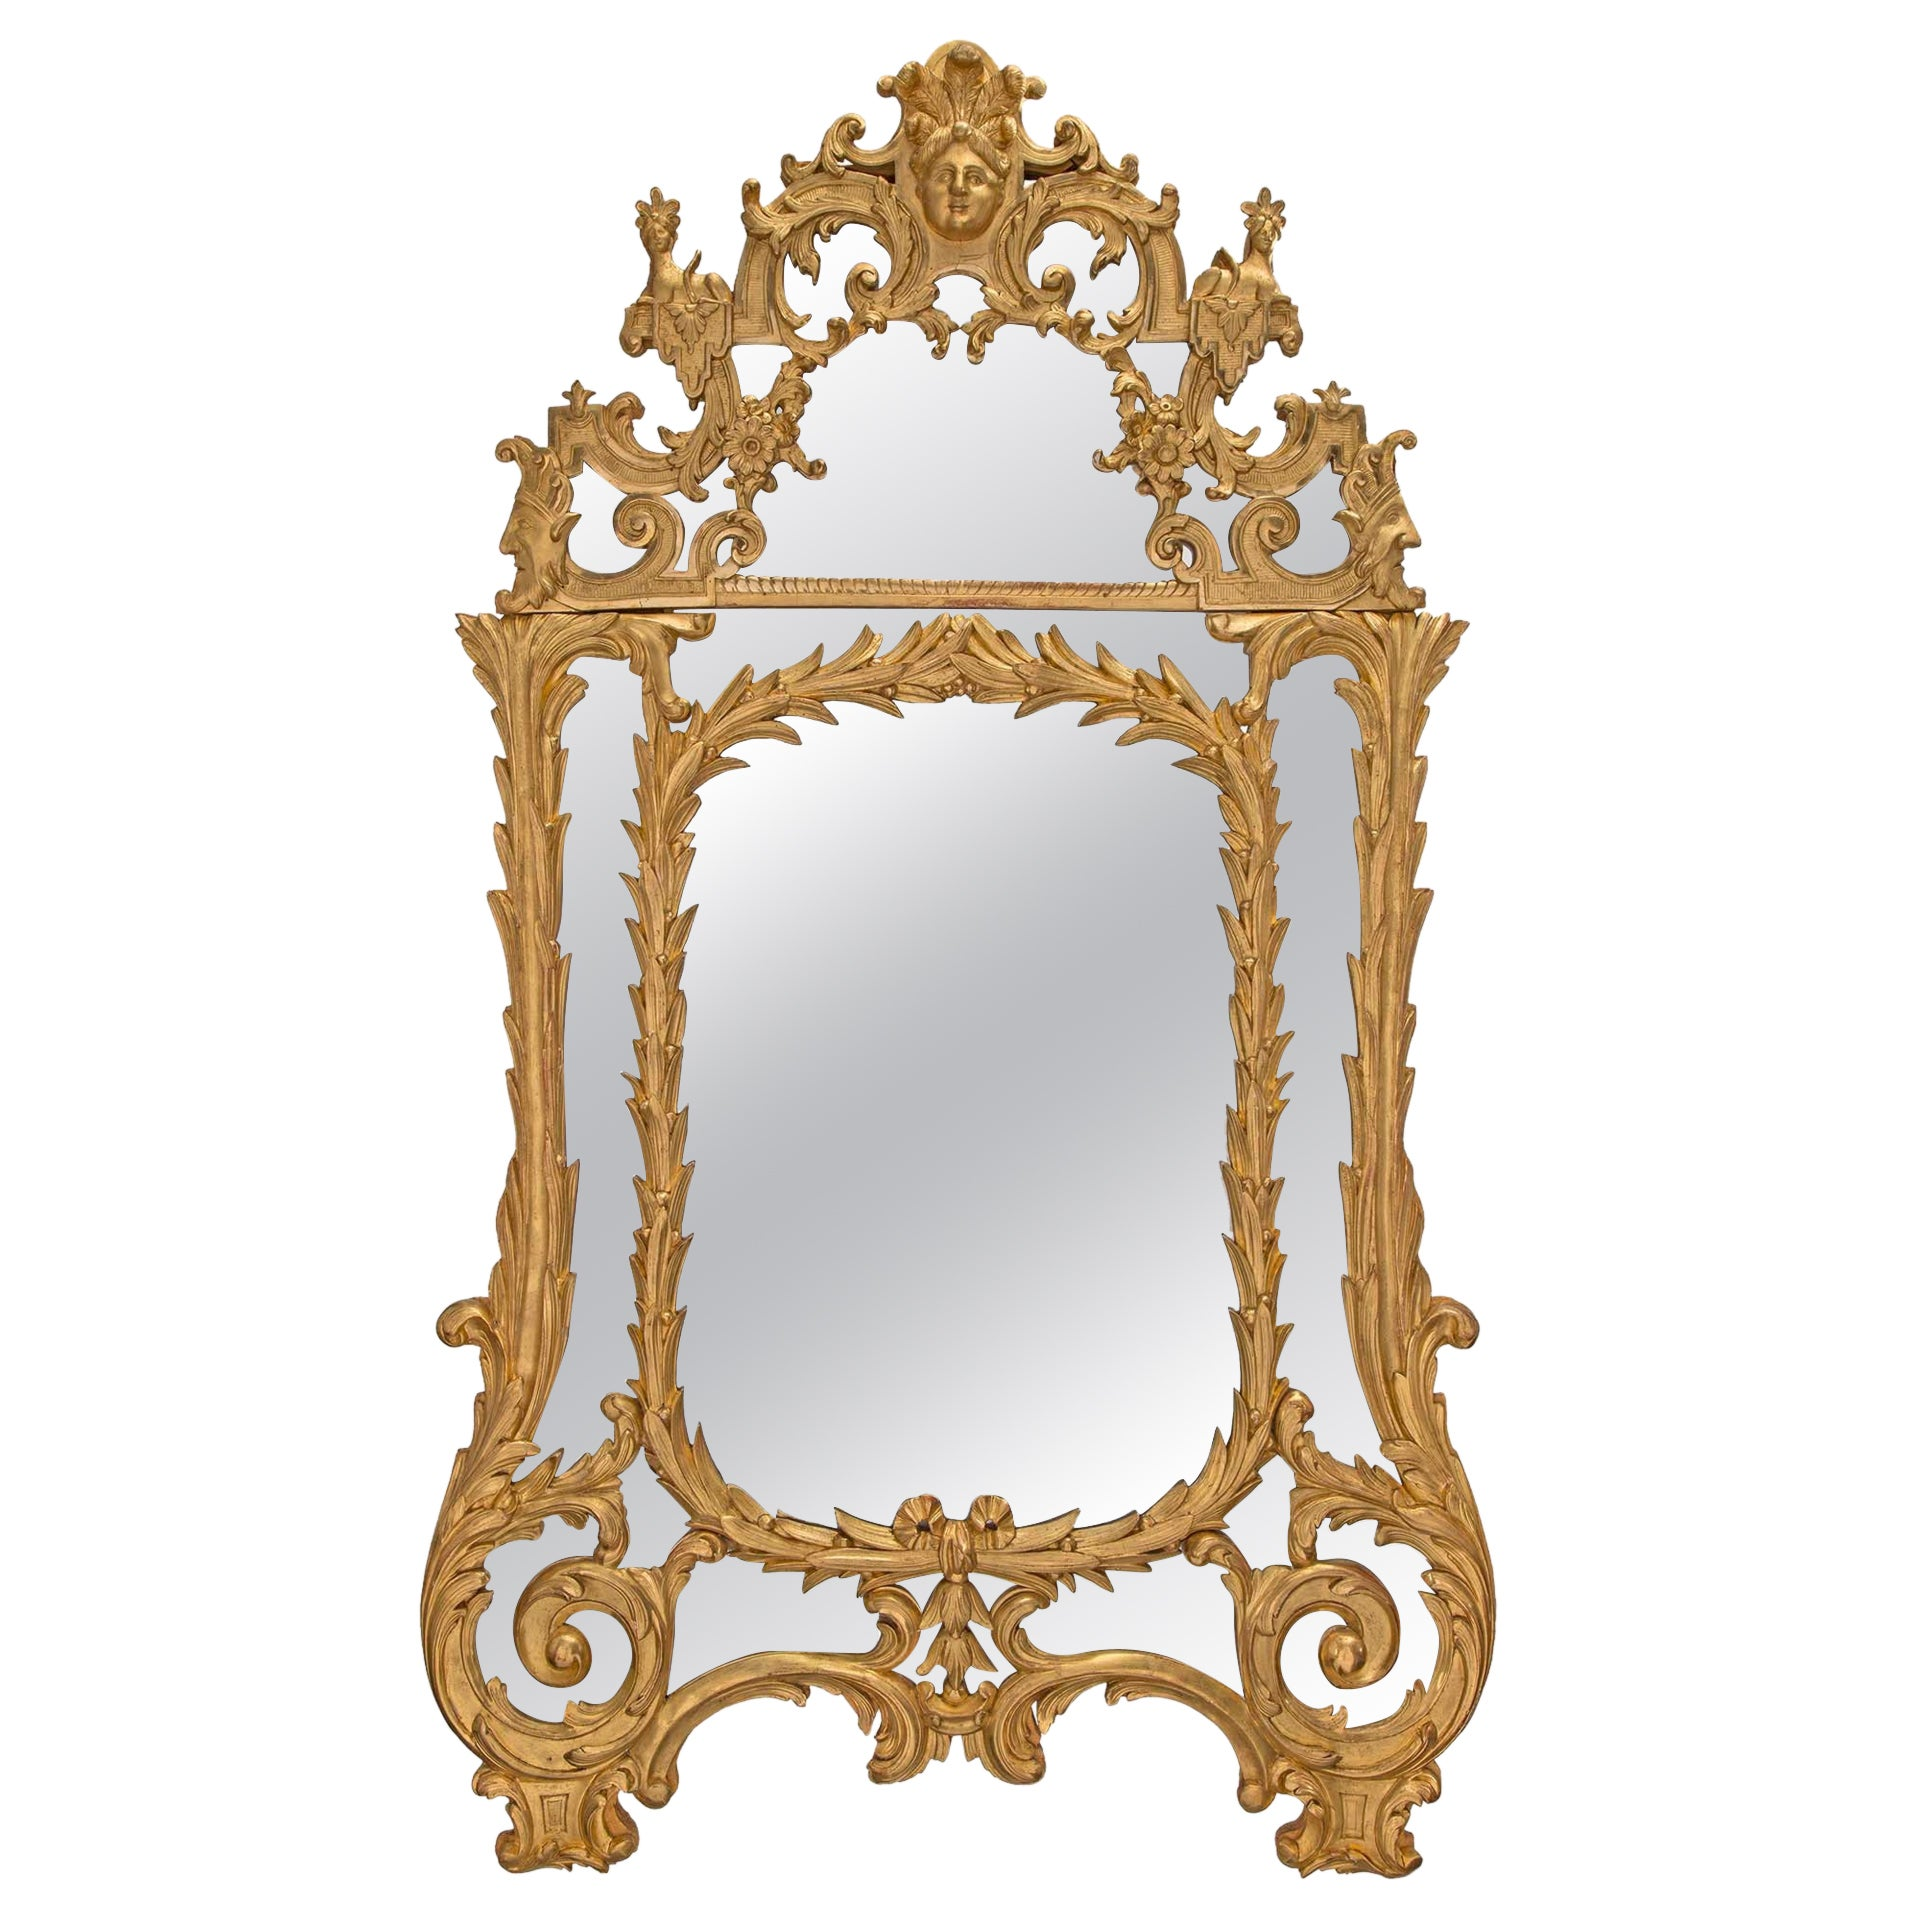 French Early 18th Century Regence Period Giltwood Mirror